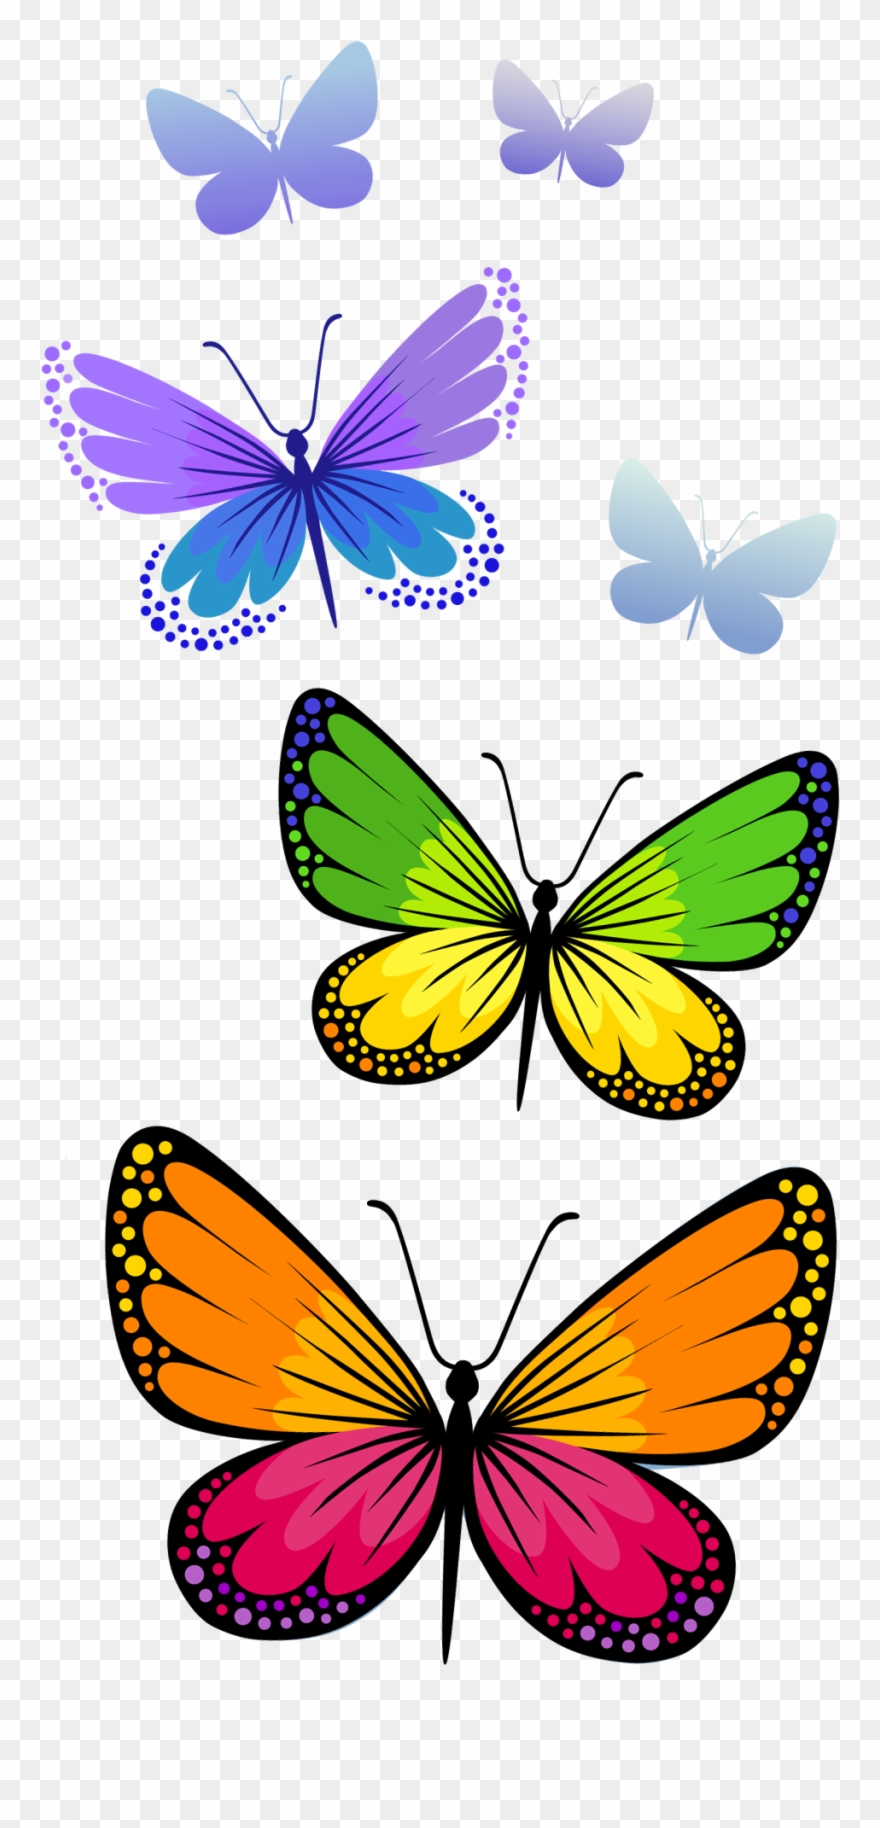 Butterfly clipart free use png free Half Butterfly Cliparts Free Download Clip Art - Png Format ... png free